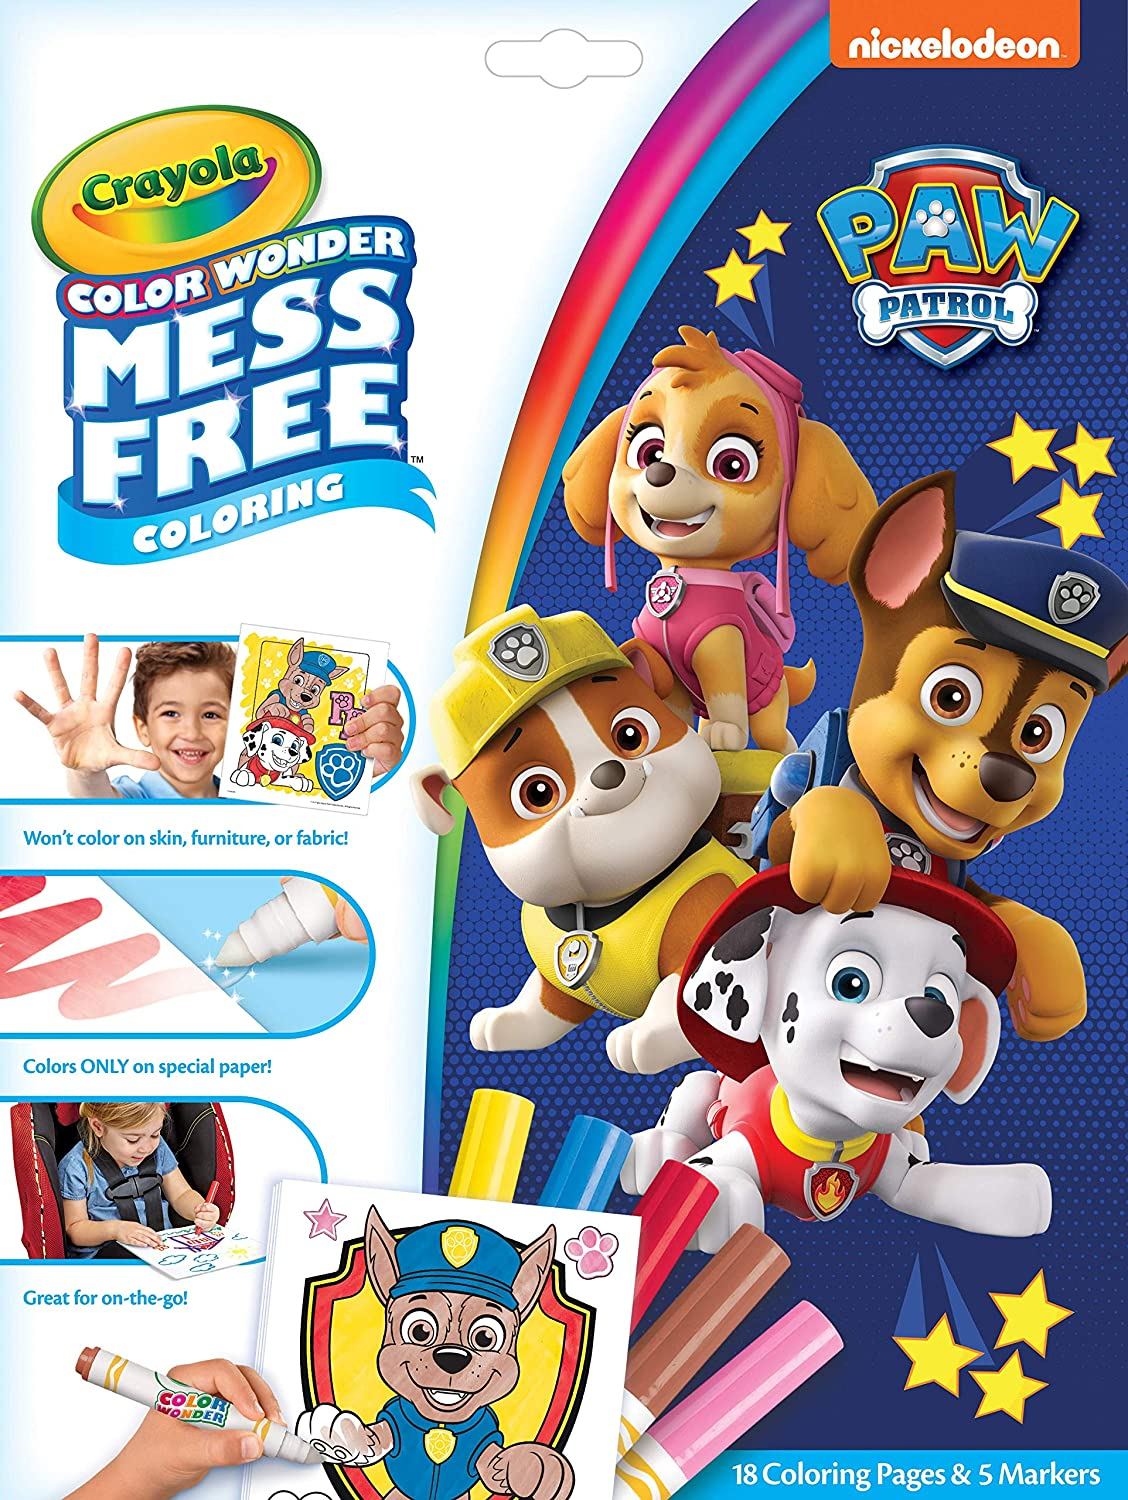 Crayola 75-7007 Wonder Paw Patrol Pages and Markers Coloring Books and Makers